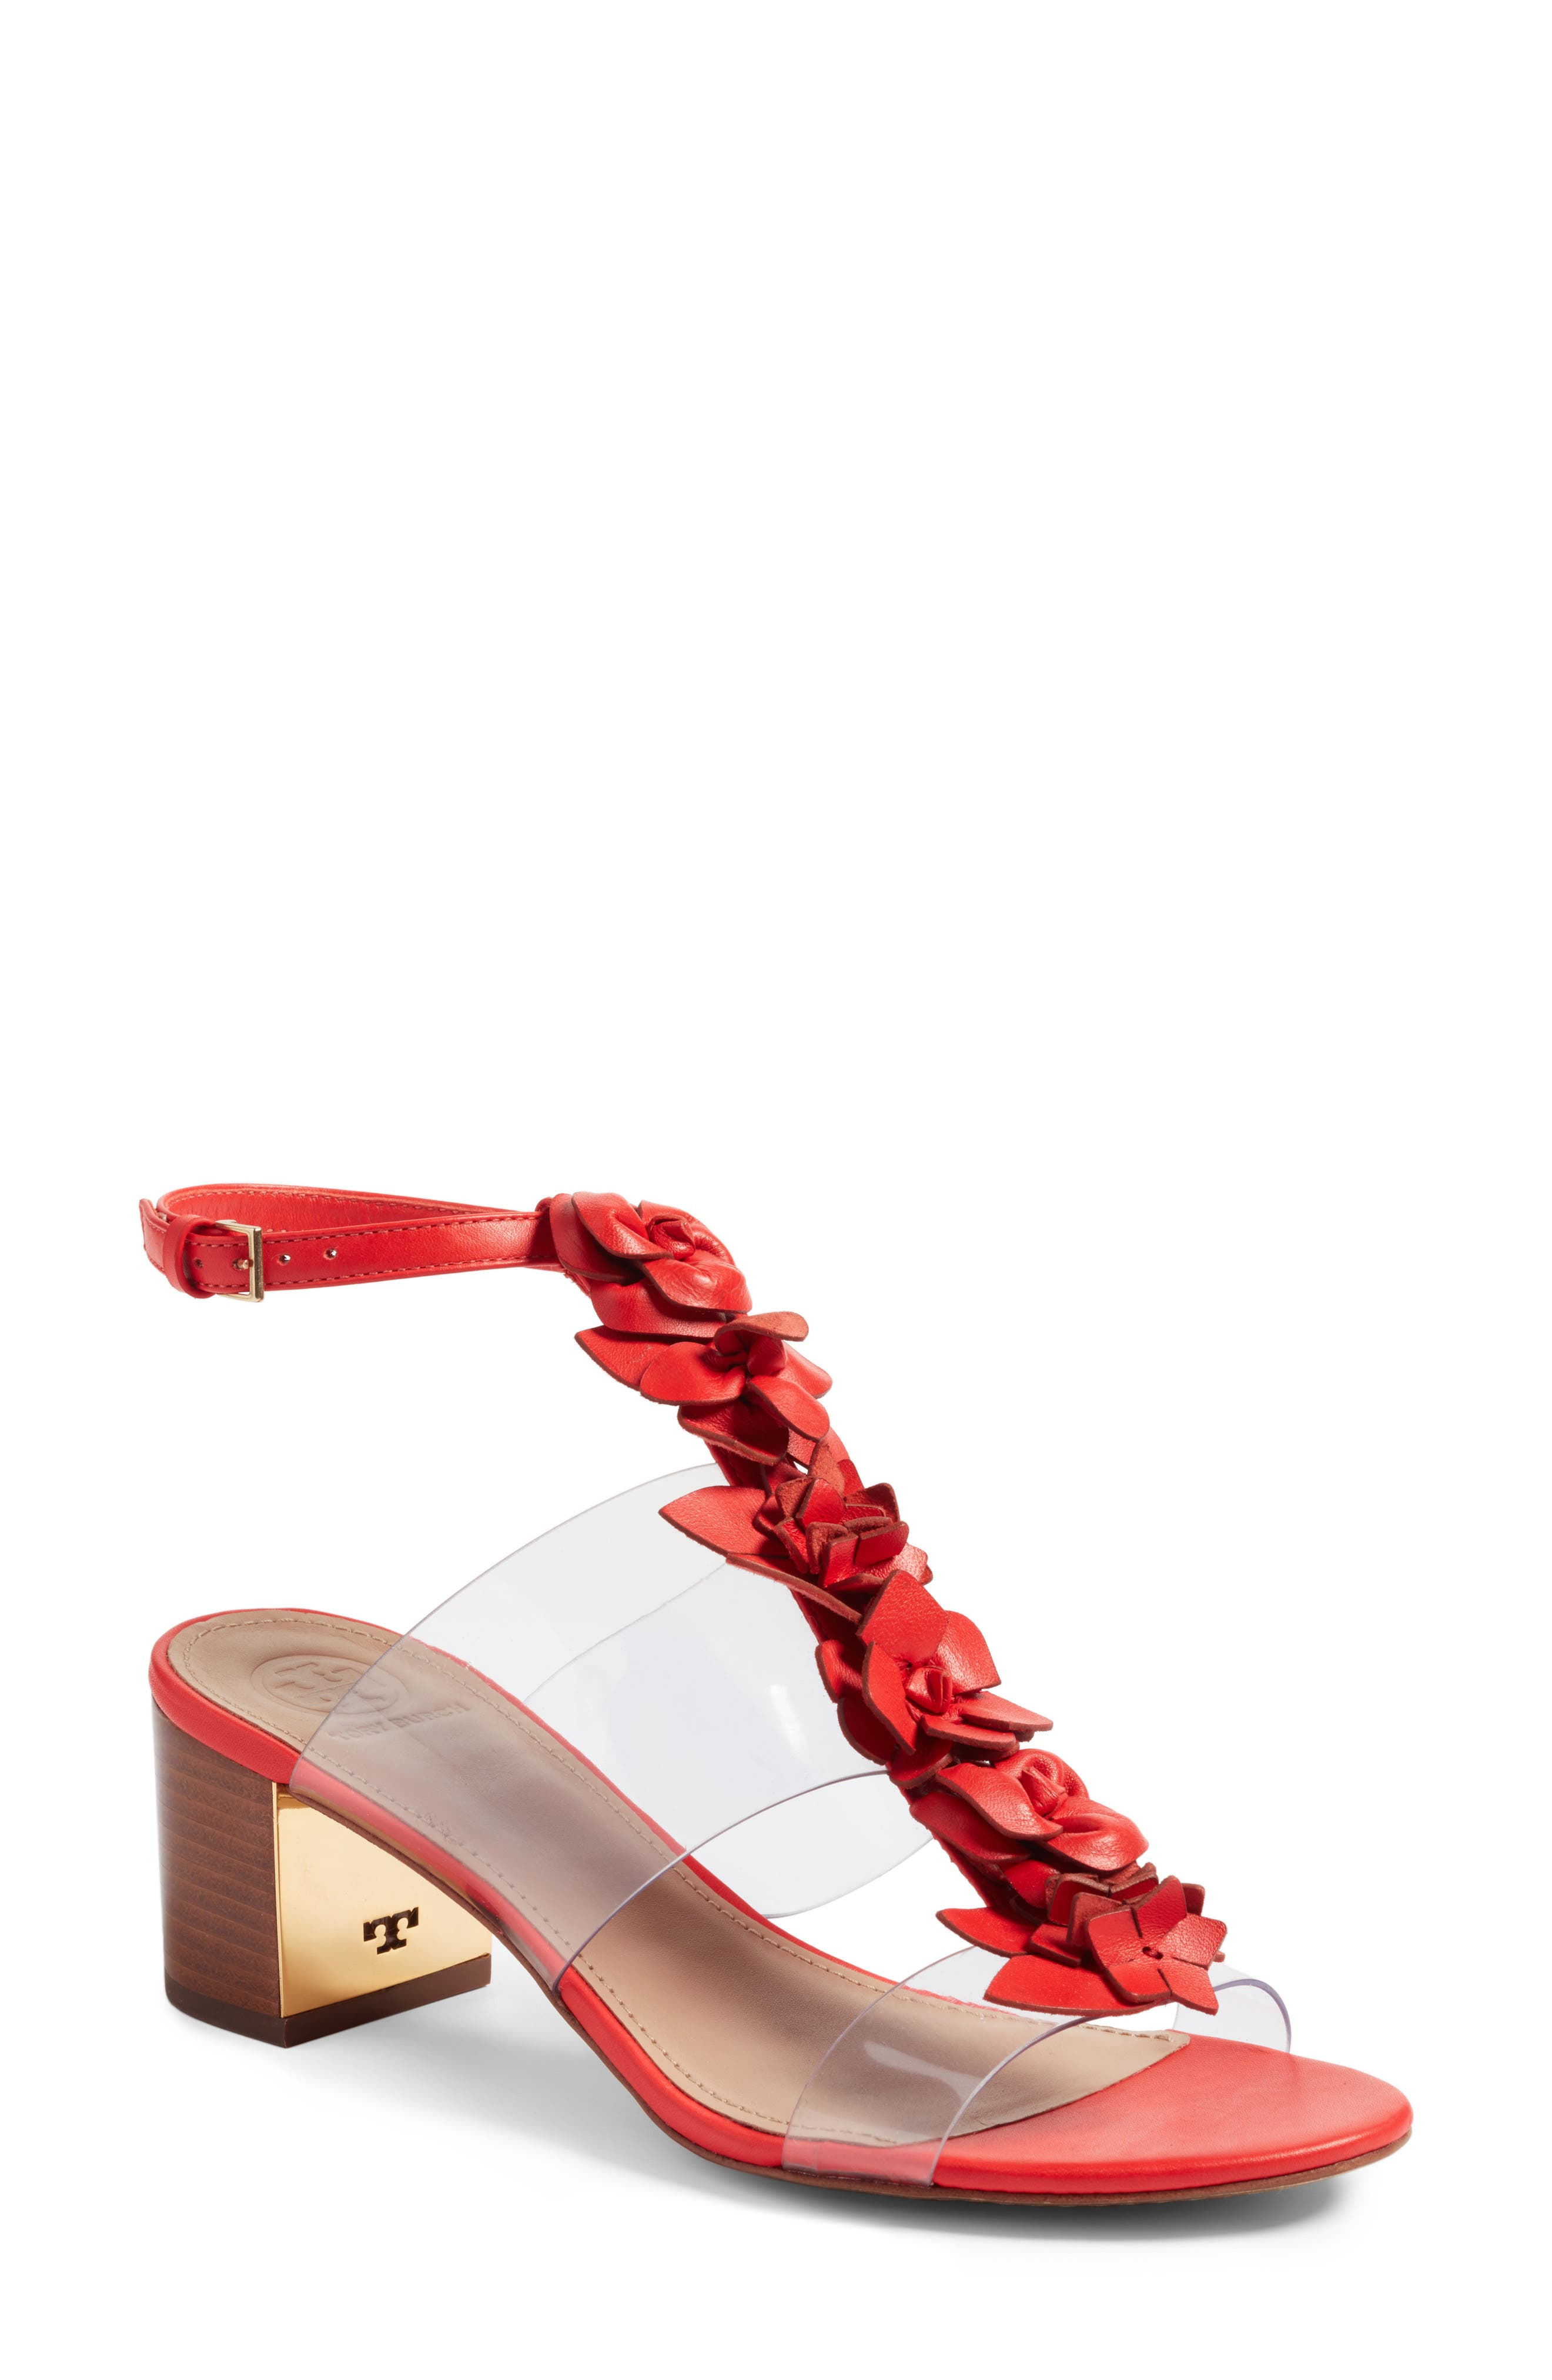 Blossom Sandal,                         Main,                         color, Red Volcano/ Clear